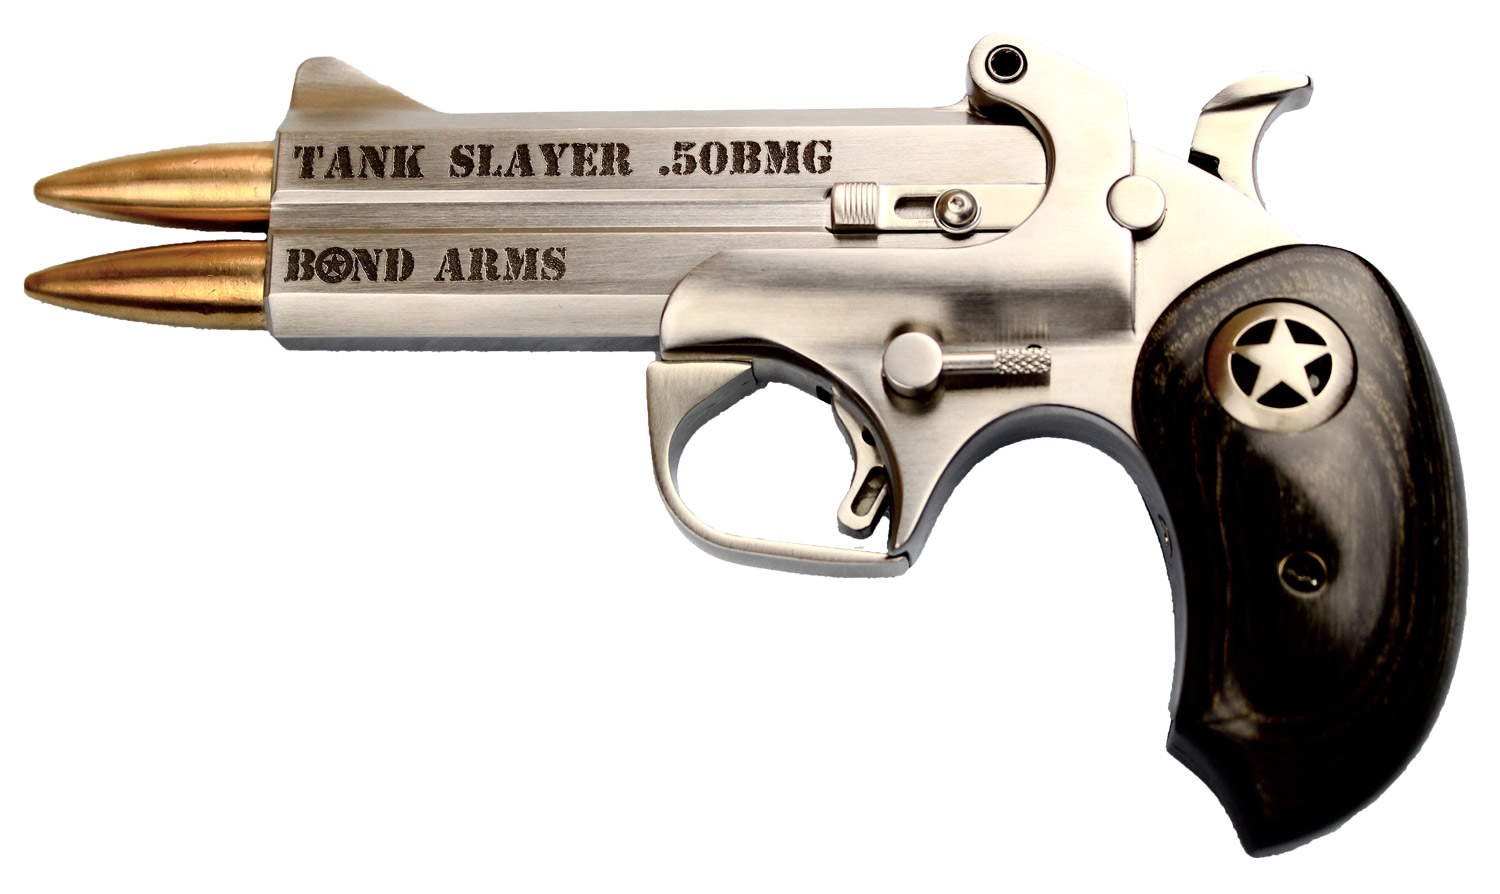 4 25 inch tank slayer barrel non functioning does not include